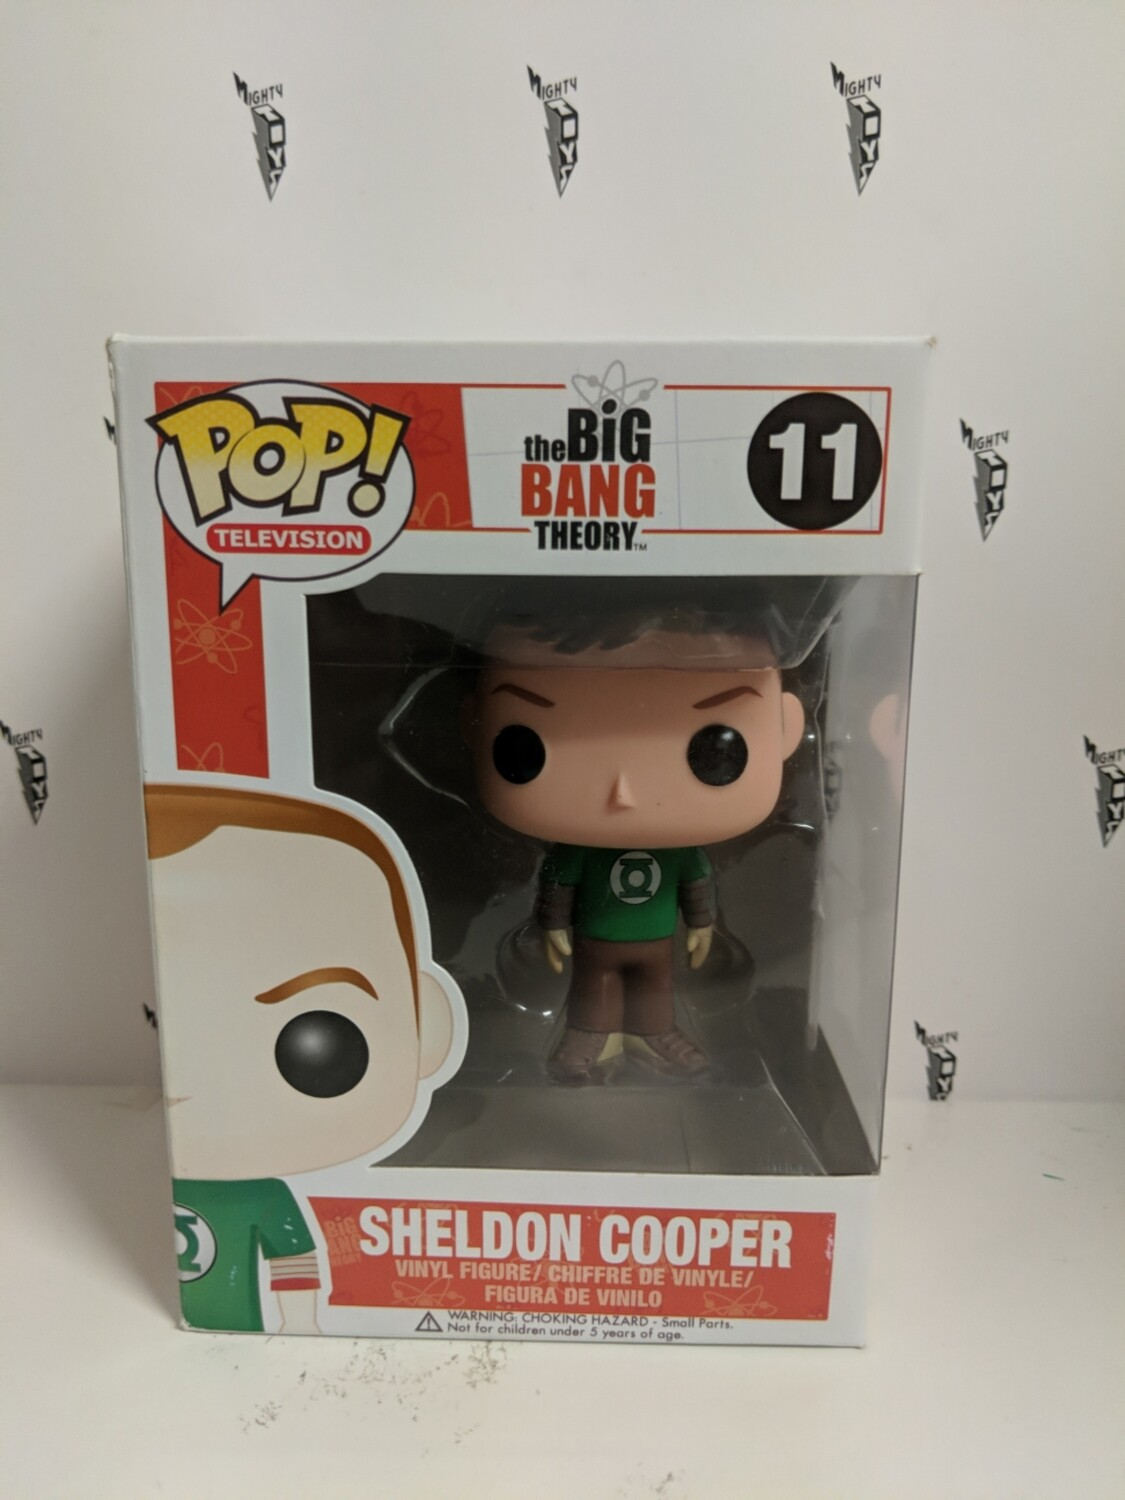 The big bang theory- Sheldon Cooper Pop! Vinyl